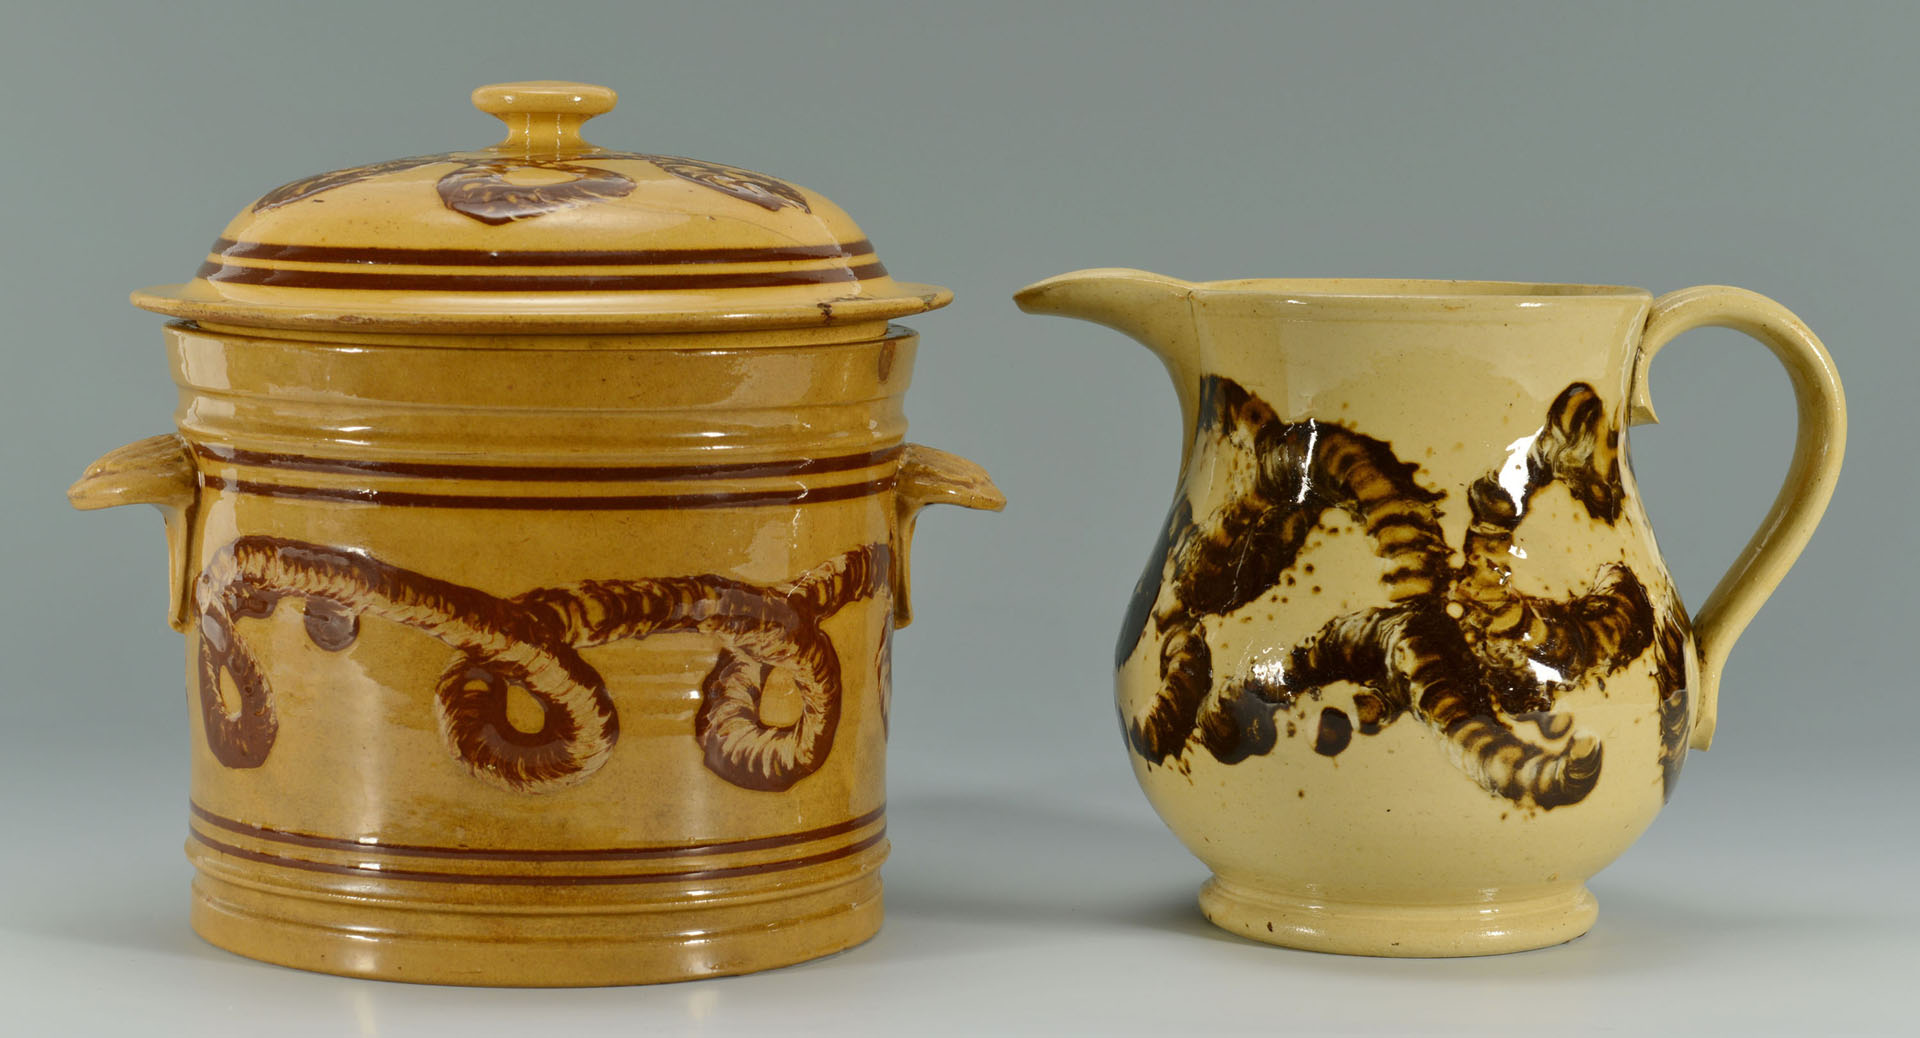 Lot 144: Yellowware Mocha Earthworm jar and pitcher